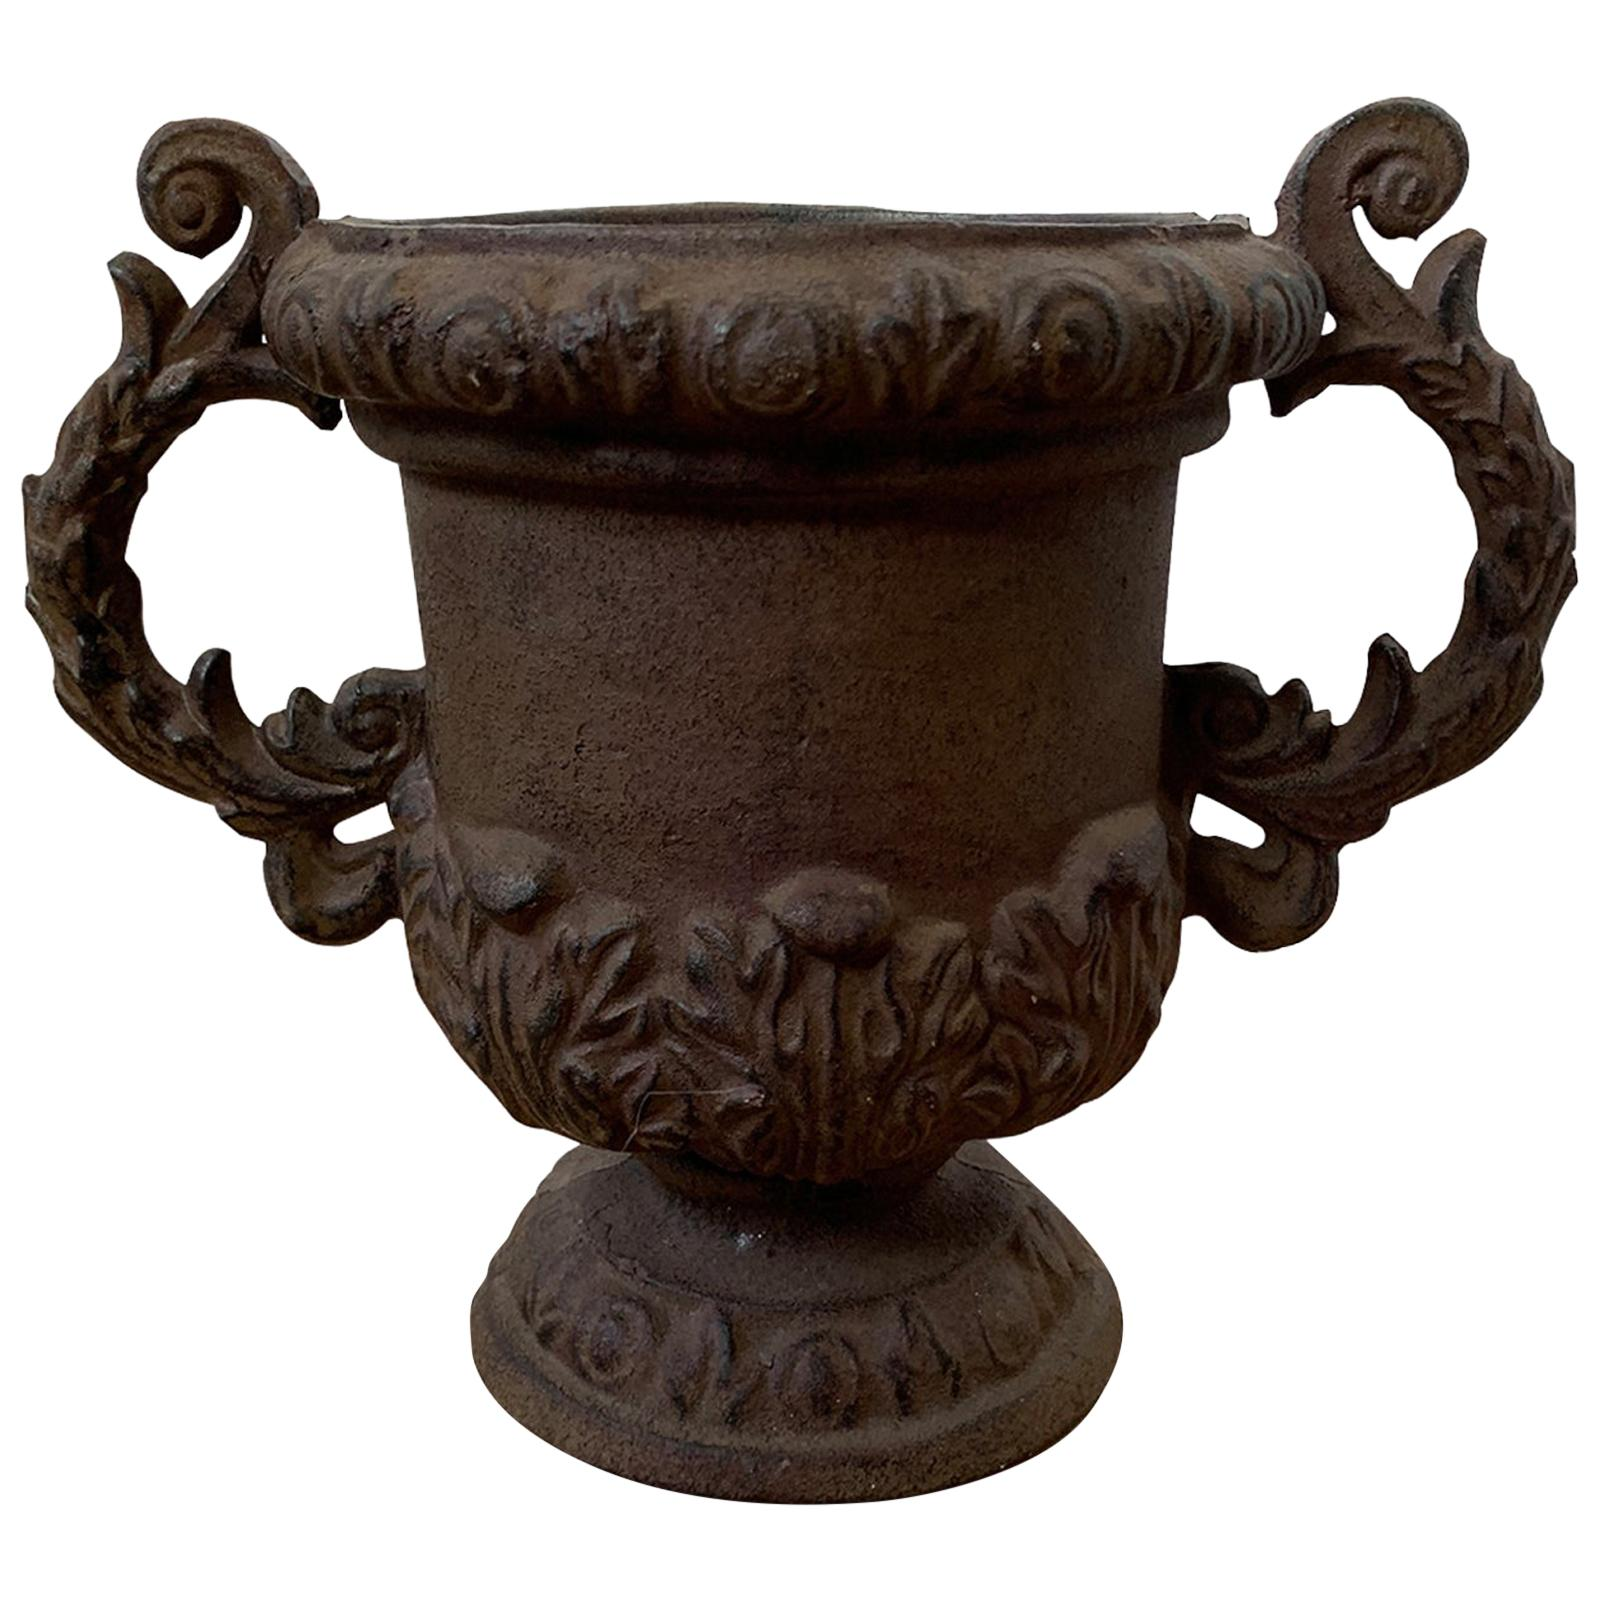 20th Century Neoclassical Iron Urn with Handles